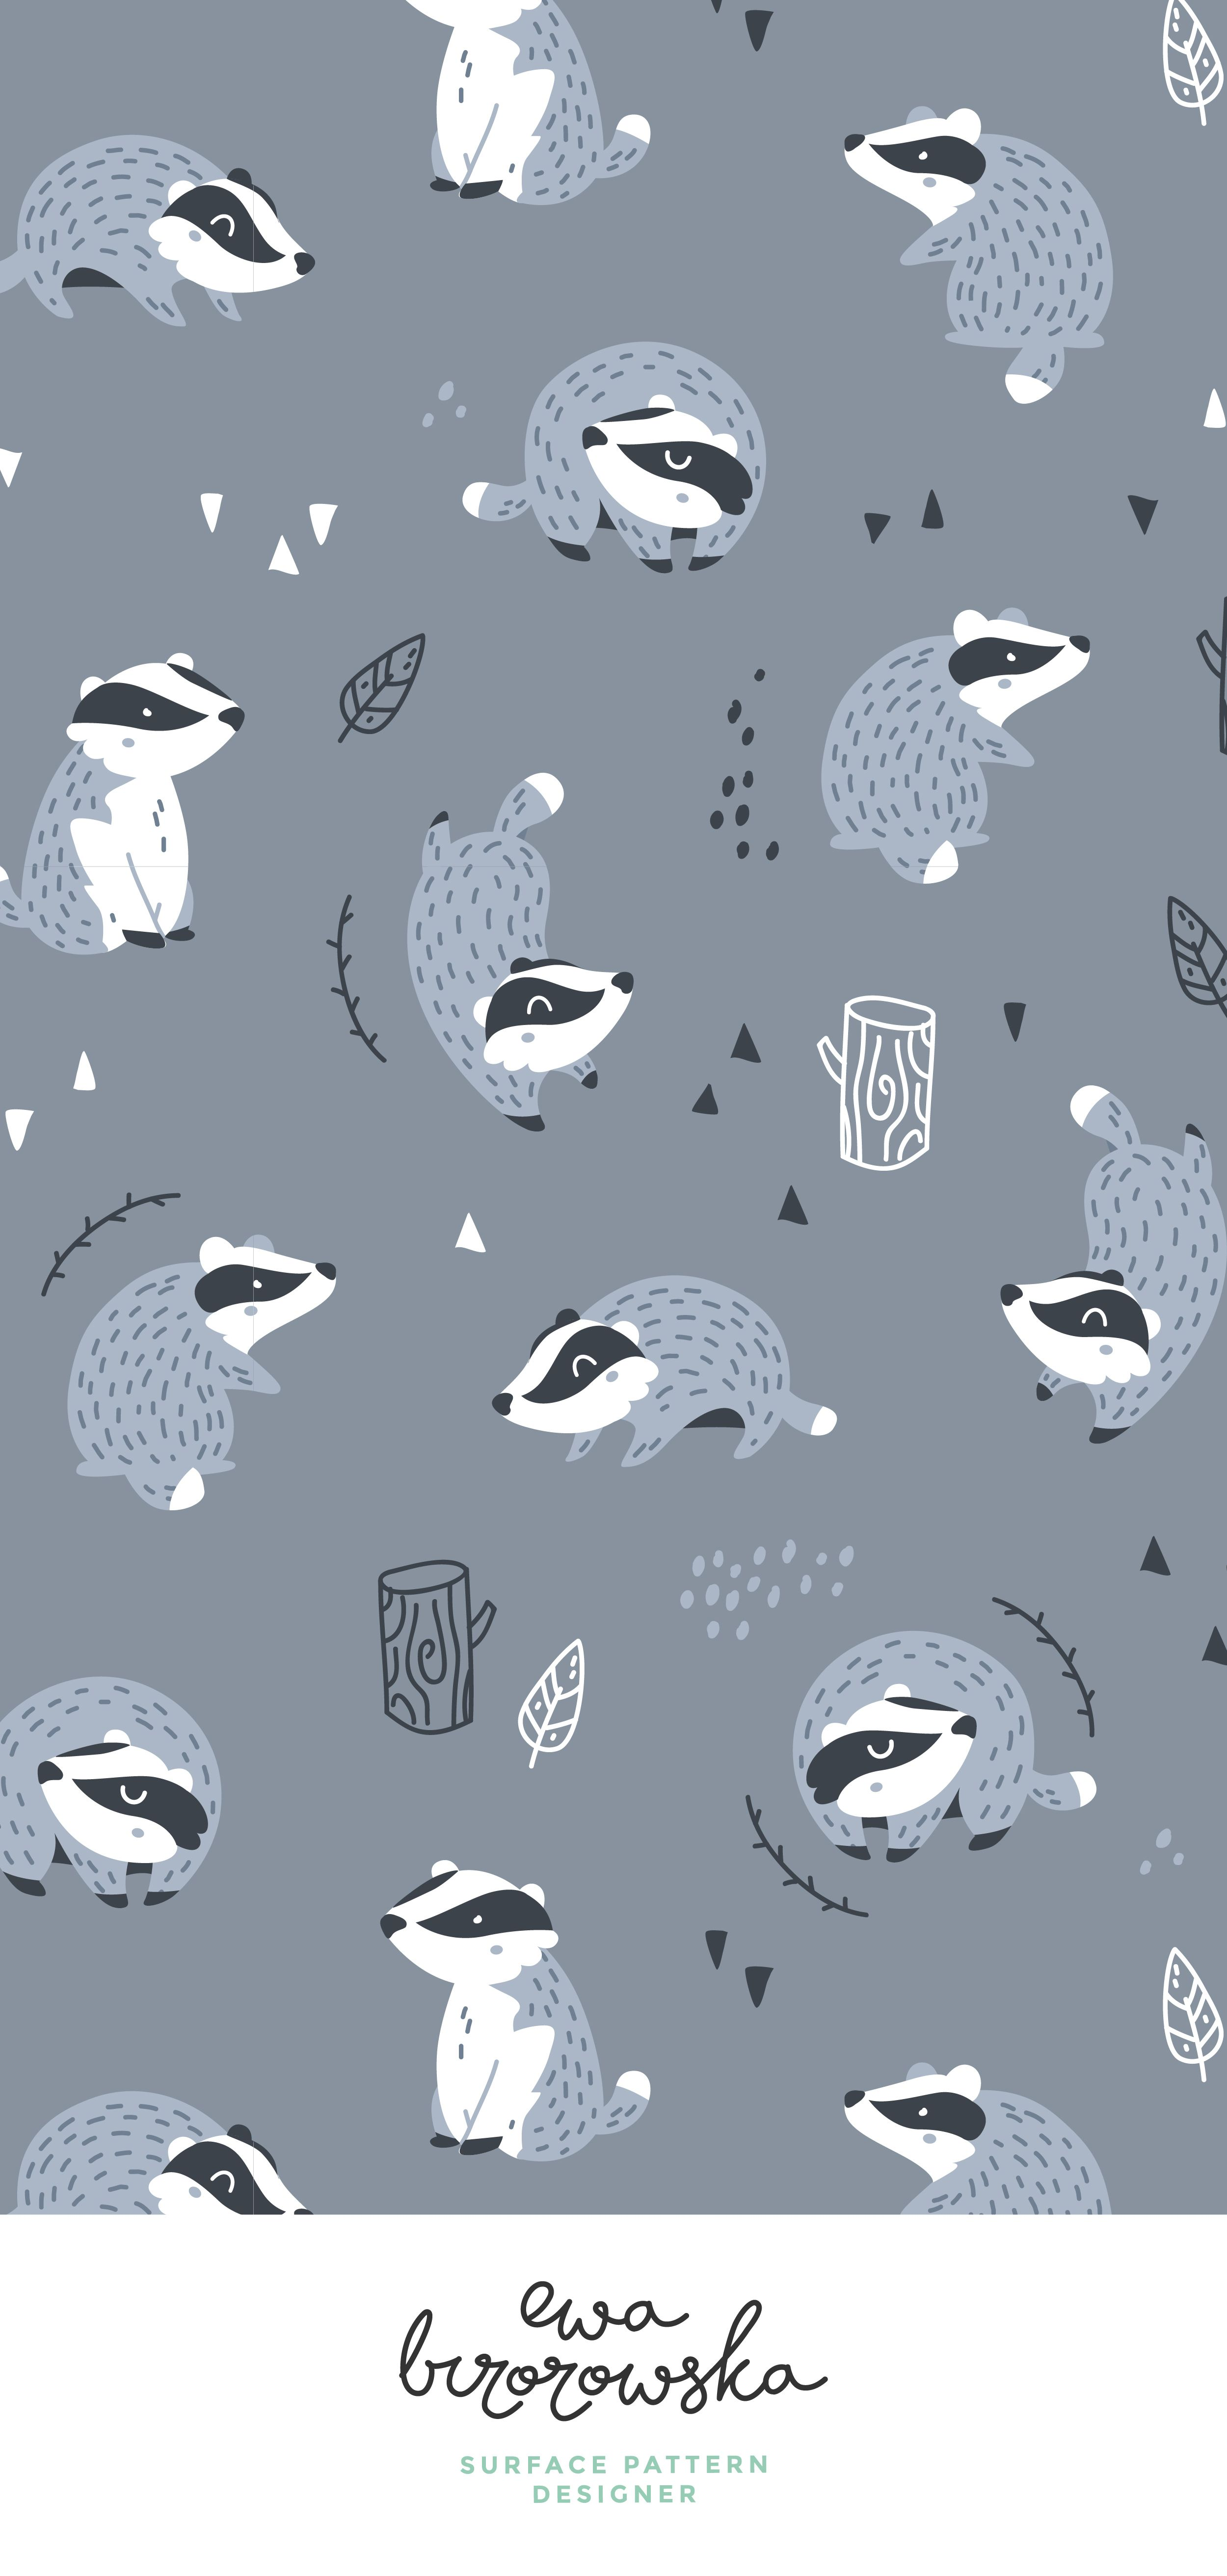 Woodland badgers textile pattern design -dark blue. Scandinavian style, children pattern design, children illustration, badger illustration, woodland fabric, pattern design, textile design, surface pattern design, forest, wood, dark blue, scandinavian illustration, nursery. #surfacepatterndesign